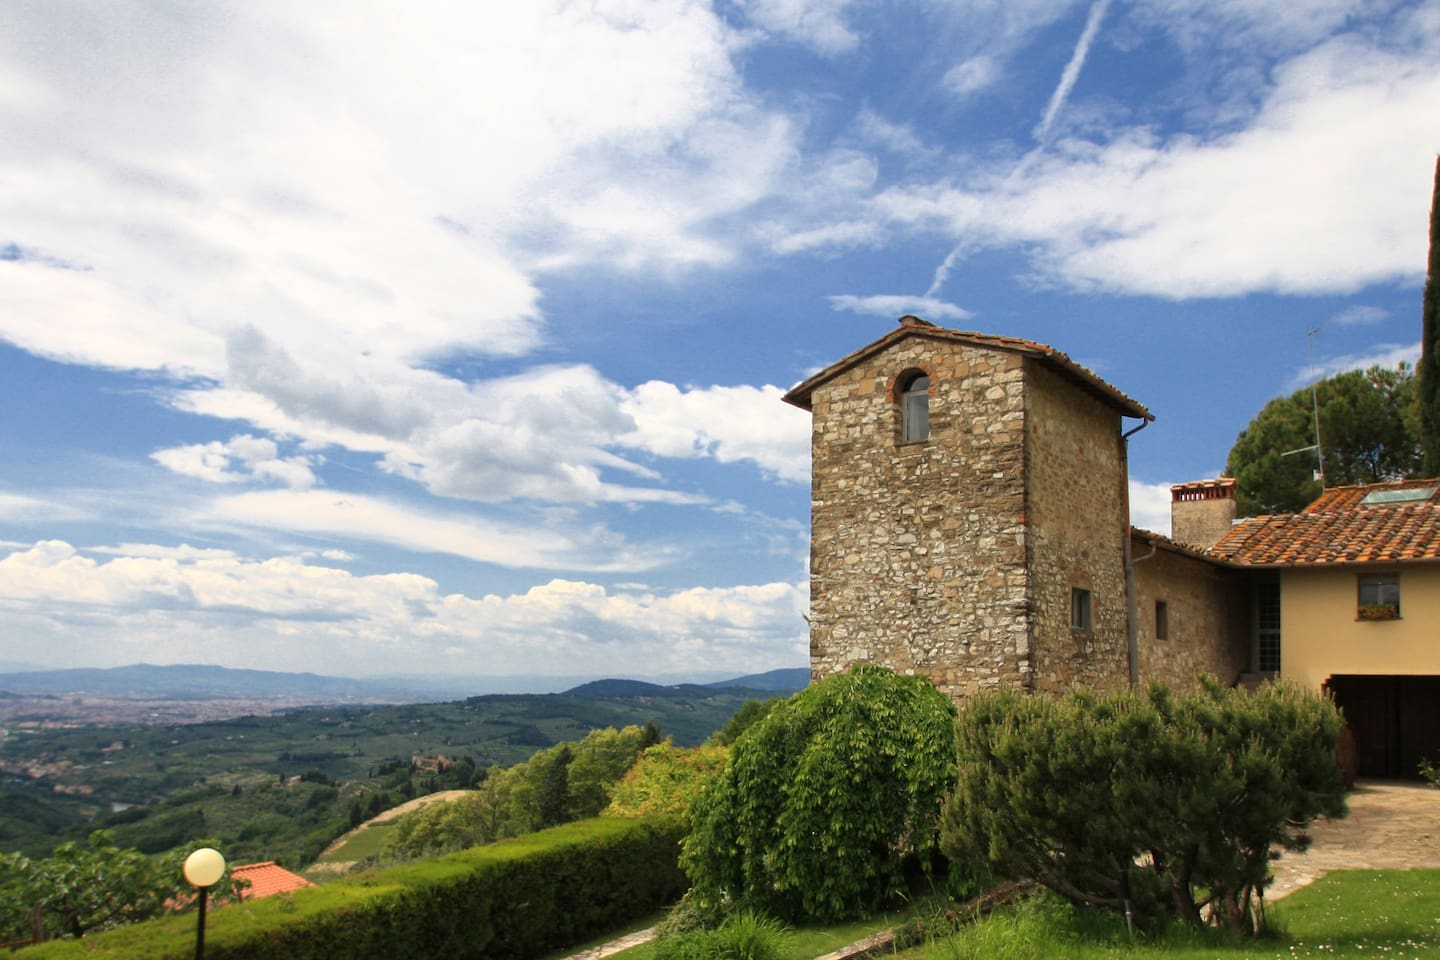 Casale fontibucci is truly a magical, romantic getaway in the hills of Tuscany ***** Chase